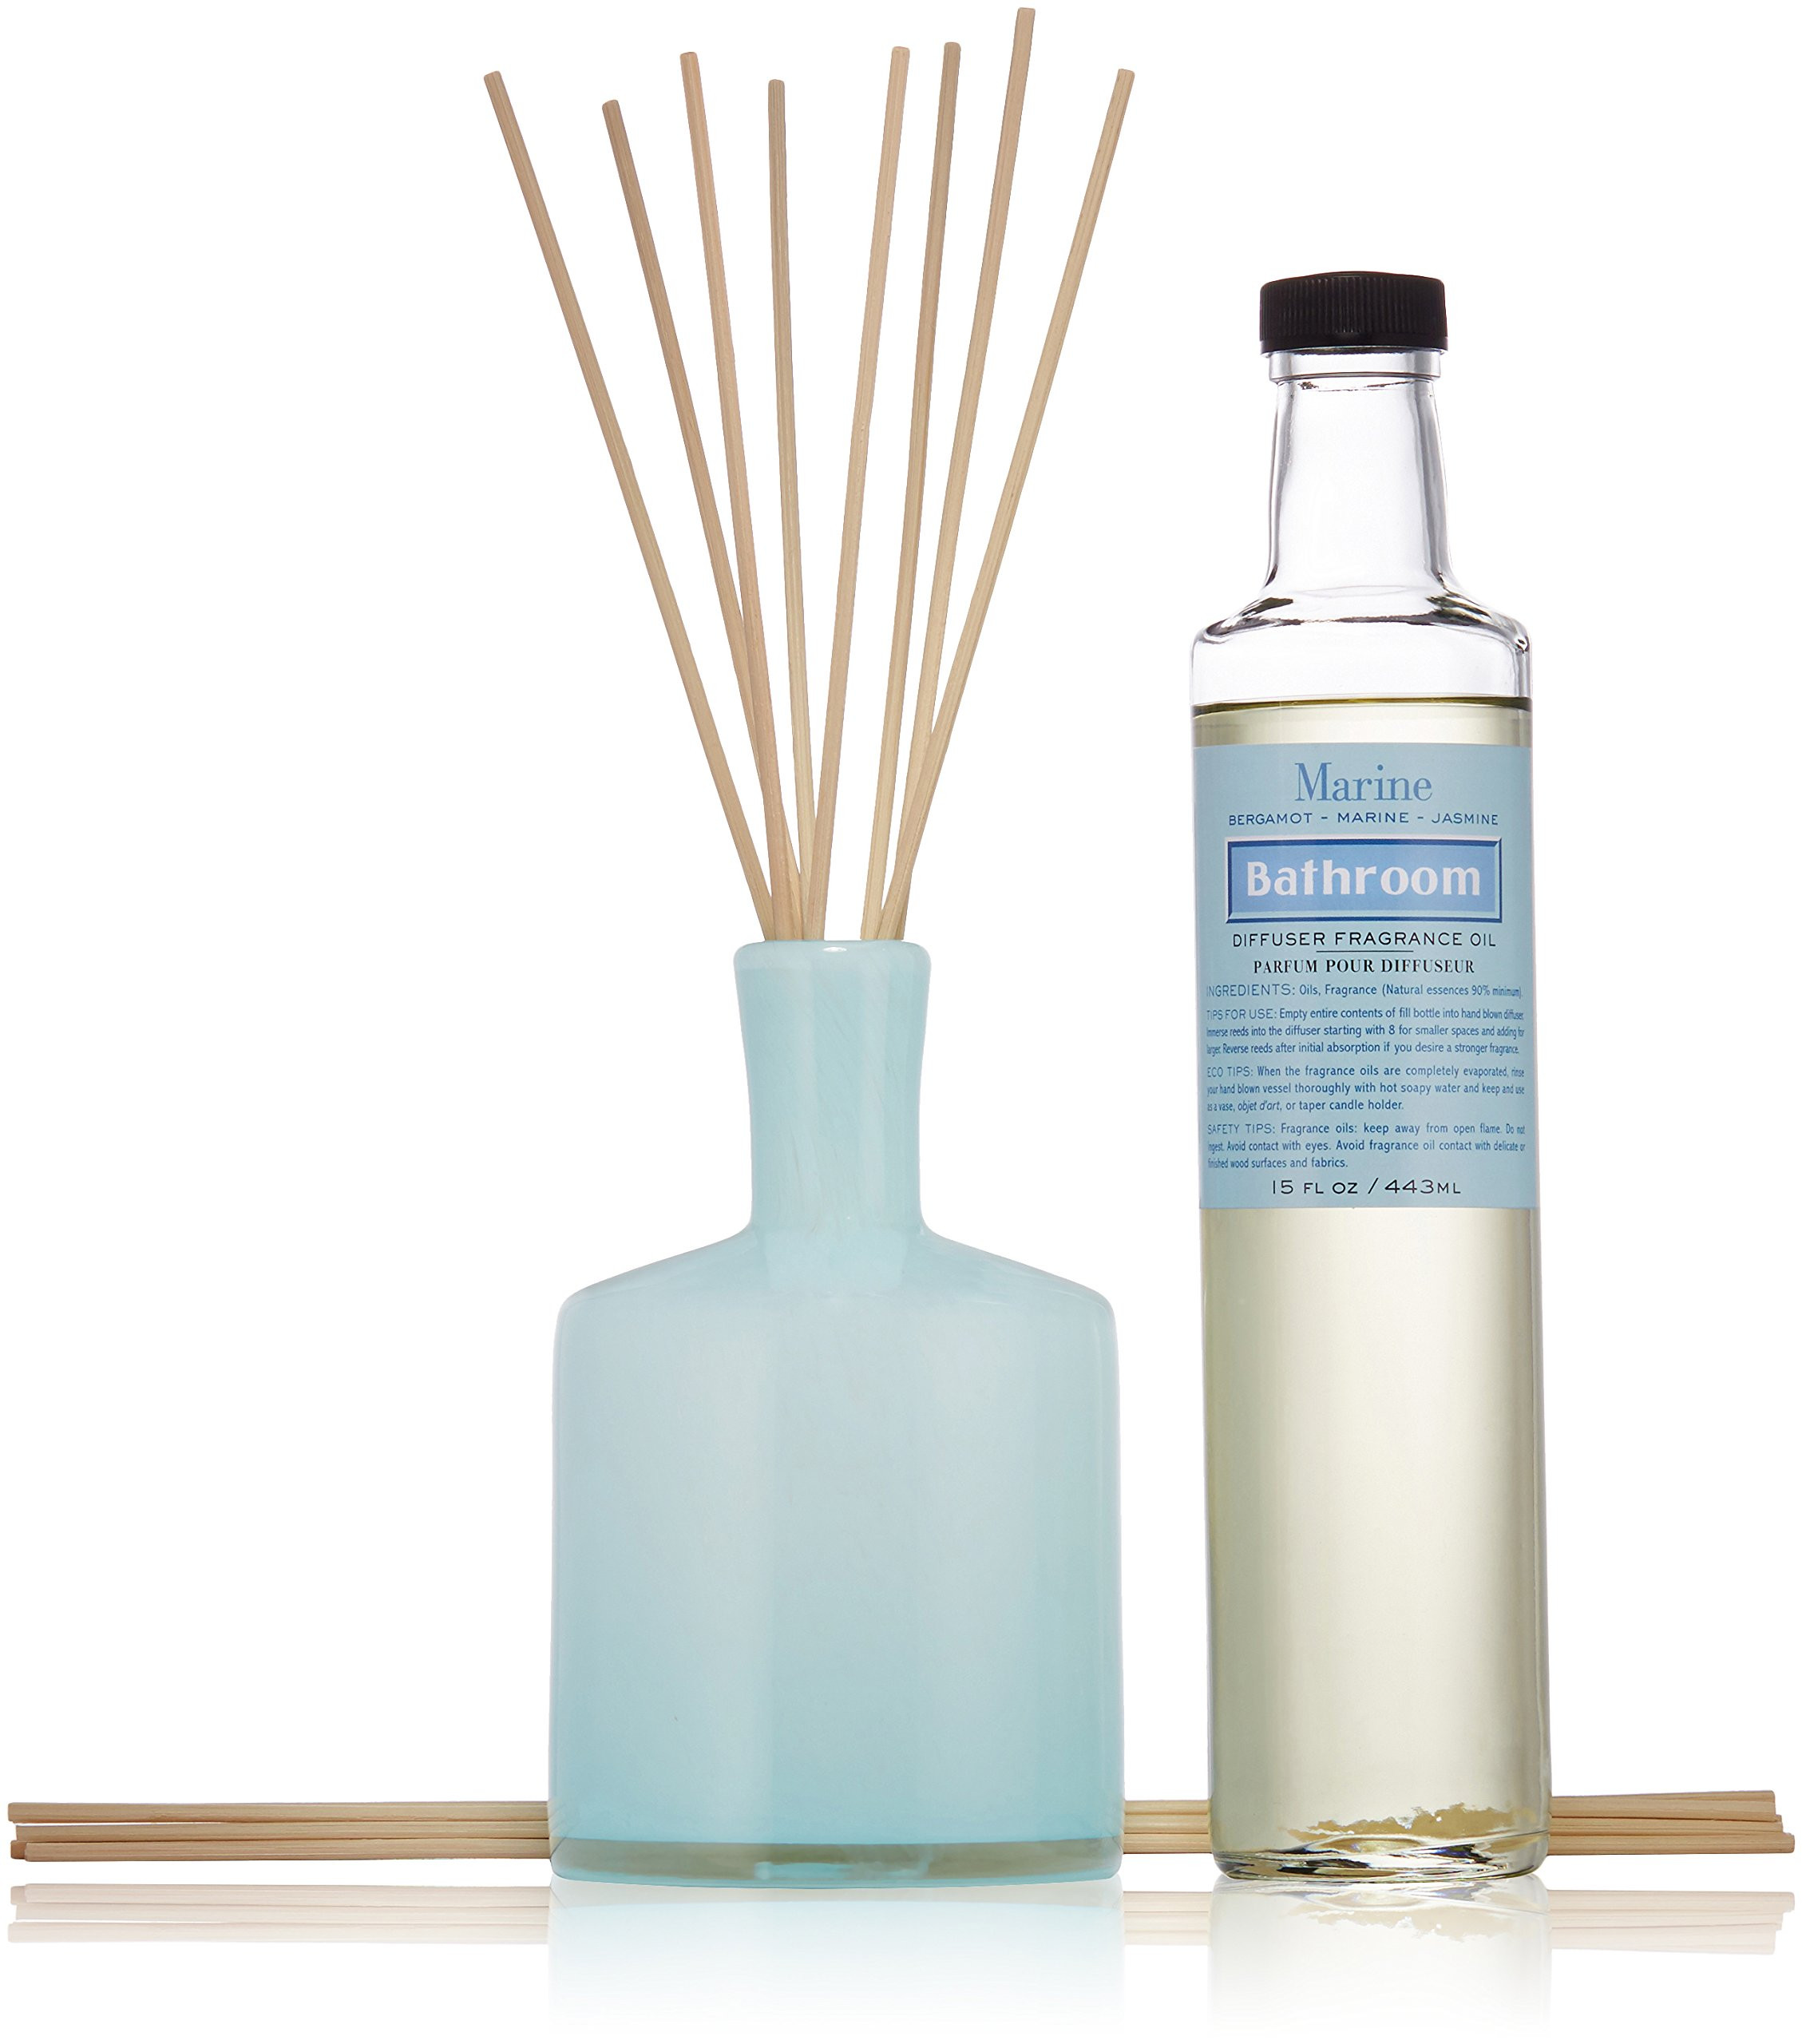 starburst vase diffuser reviews of amazon com lafco house home diffuser beach house sea dune 15 in lafco reed diffuser 15 fl oz